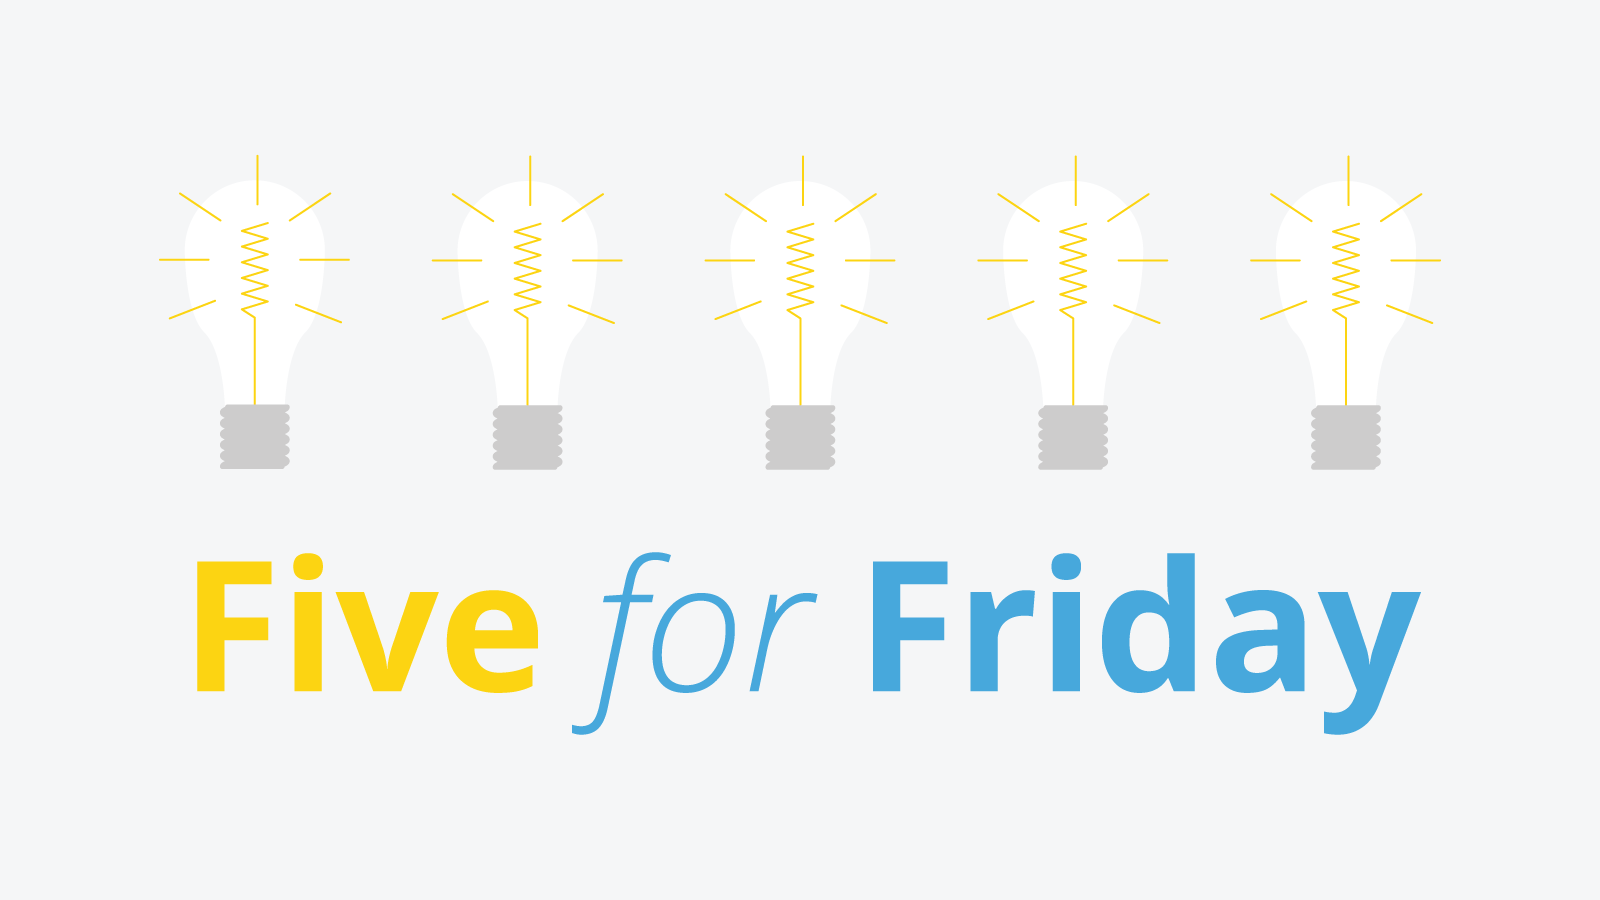 Five for Friday: Feedback